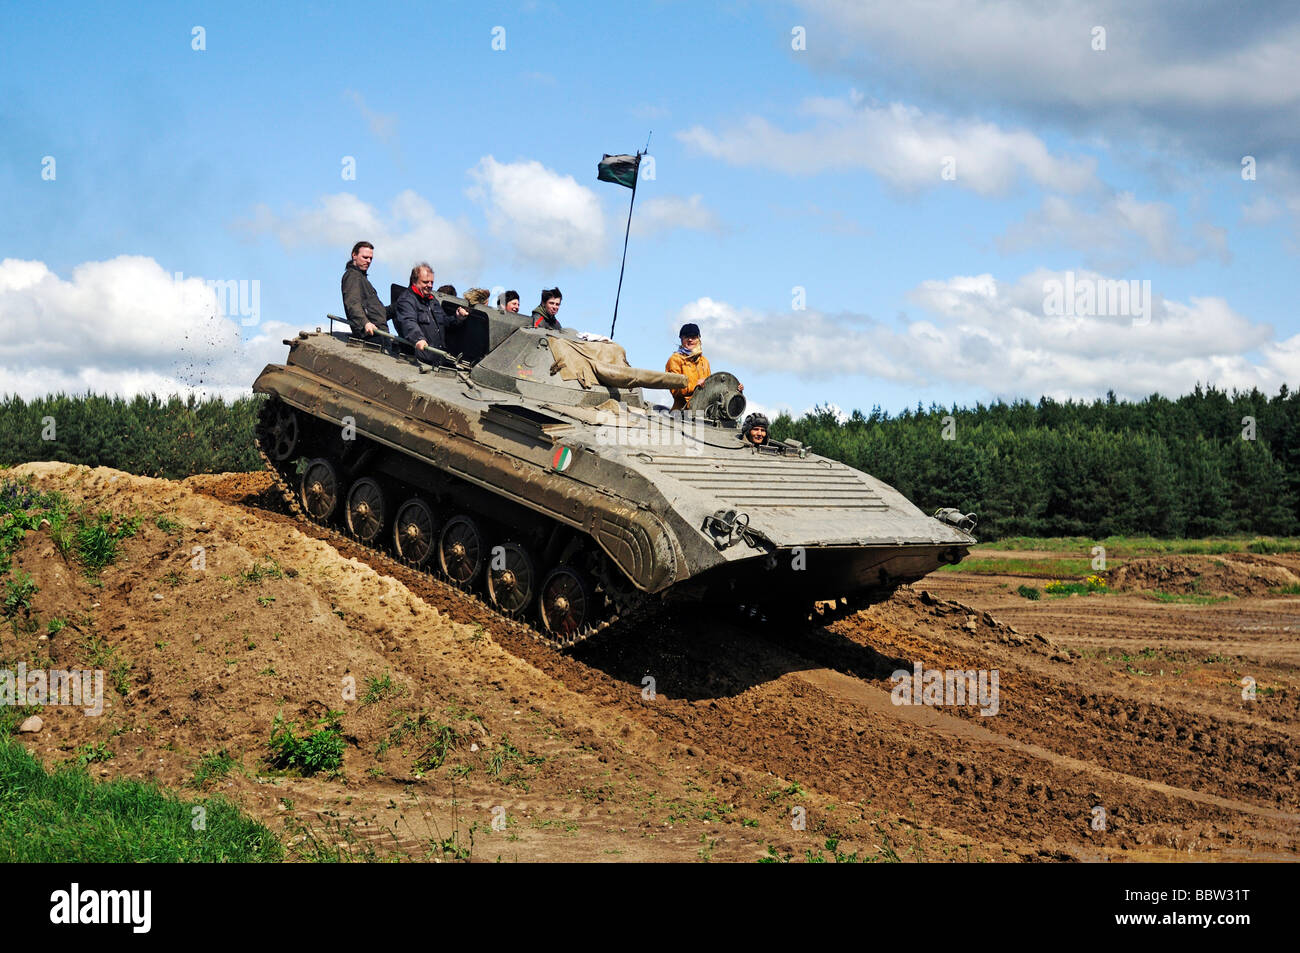 Tank driving school for tourists bmp armored vehicle steinhoefel tank driving school for tourists bmp armored vehicle steinhoefel brandenburg germany europe publicscrutiny Choice Image